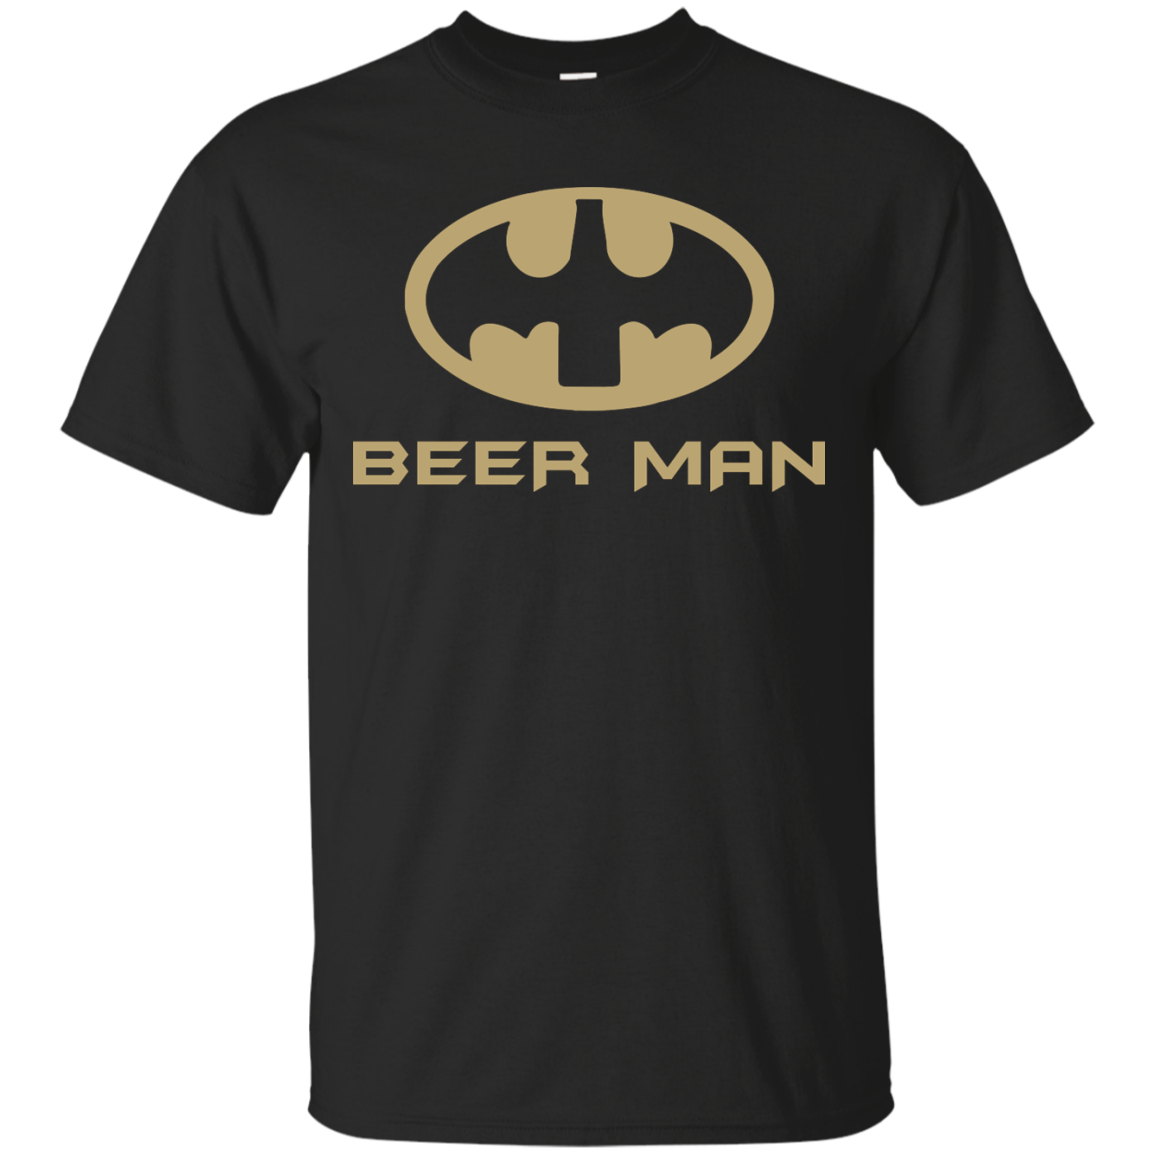 Awesome Beer Shirts Beer Man T shirt,Tank top & Hoodies